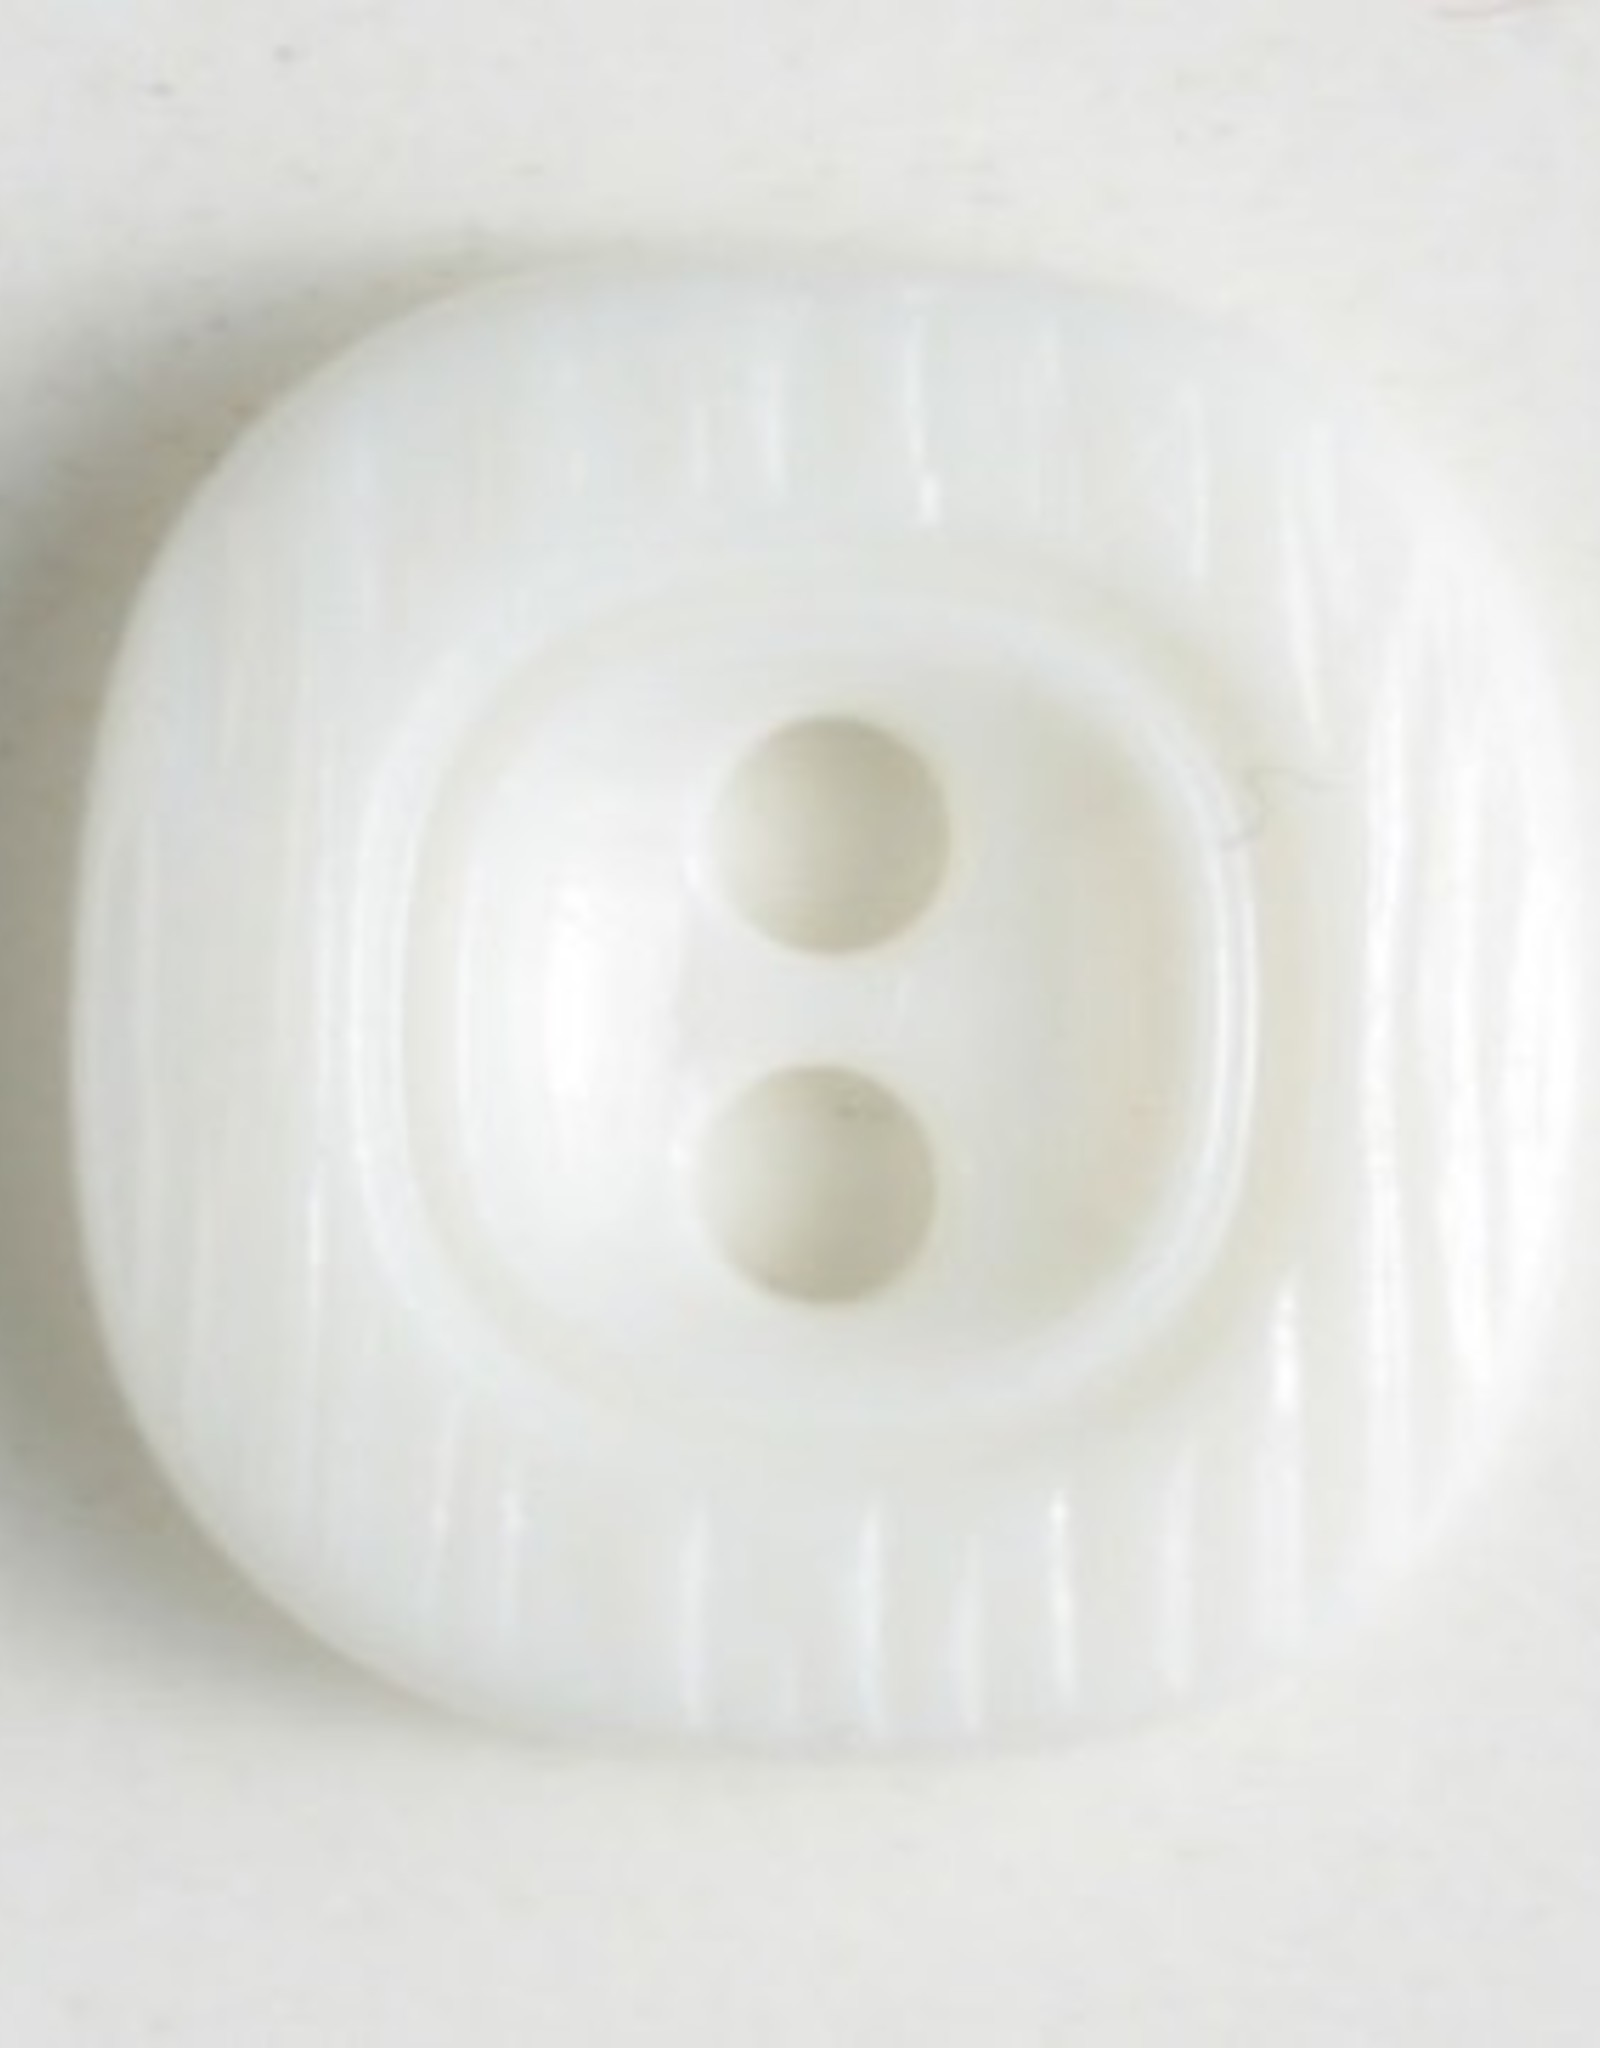 Dill Small Square Polyamide Button, 11mm